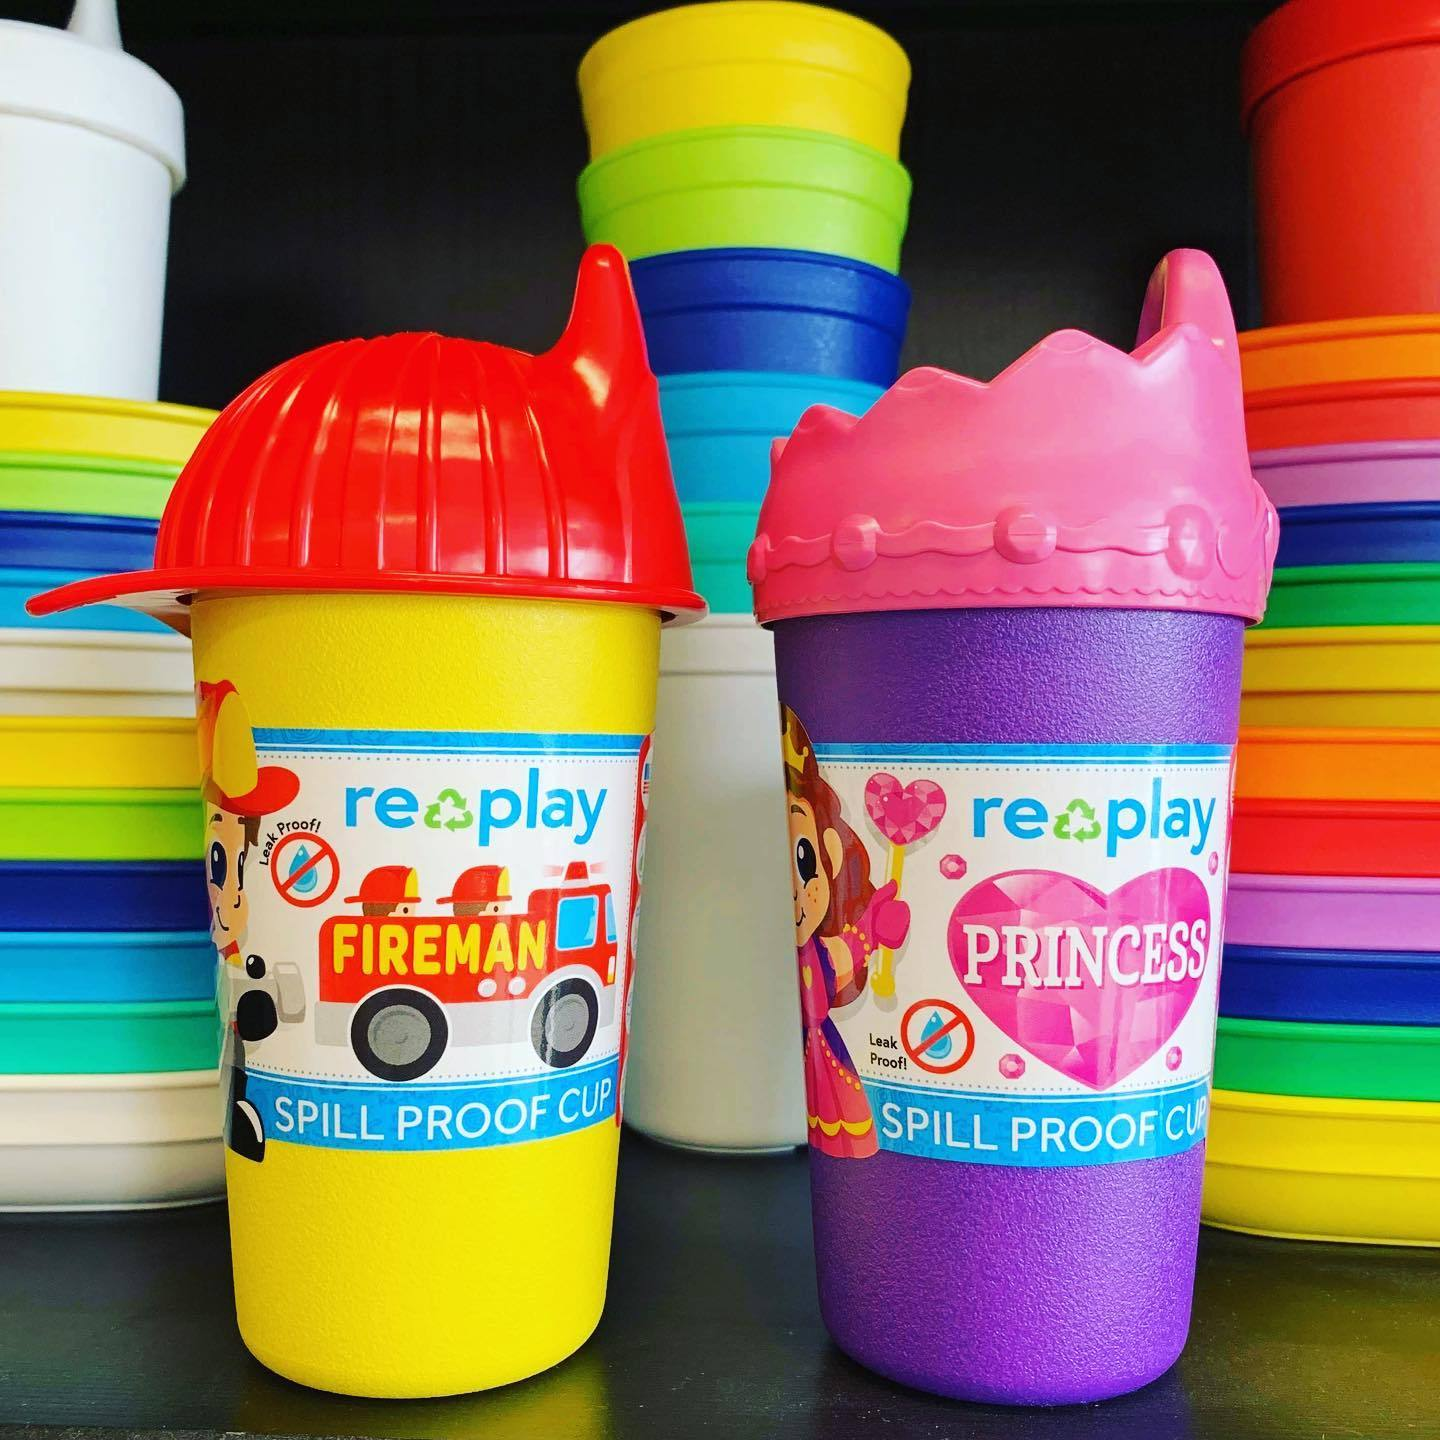 Replay Fireman Sippy Cup Replay Dinnerware at Little Earth Nest Eco Shop